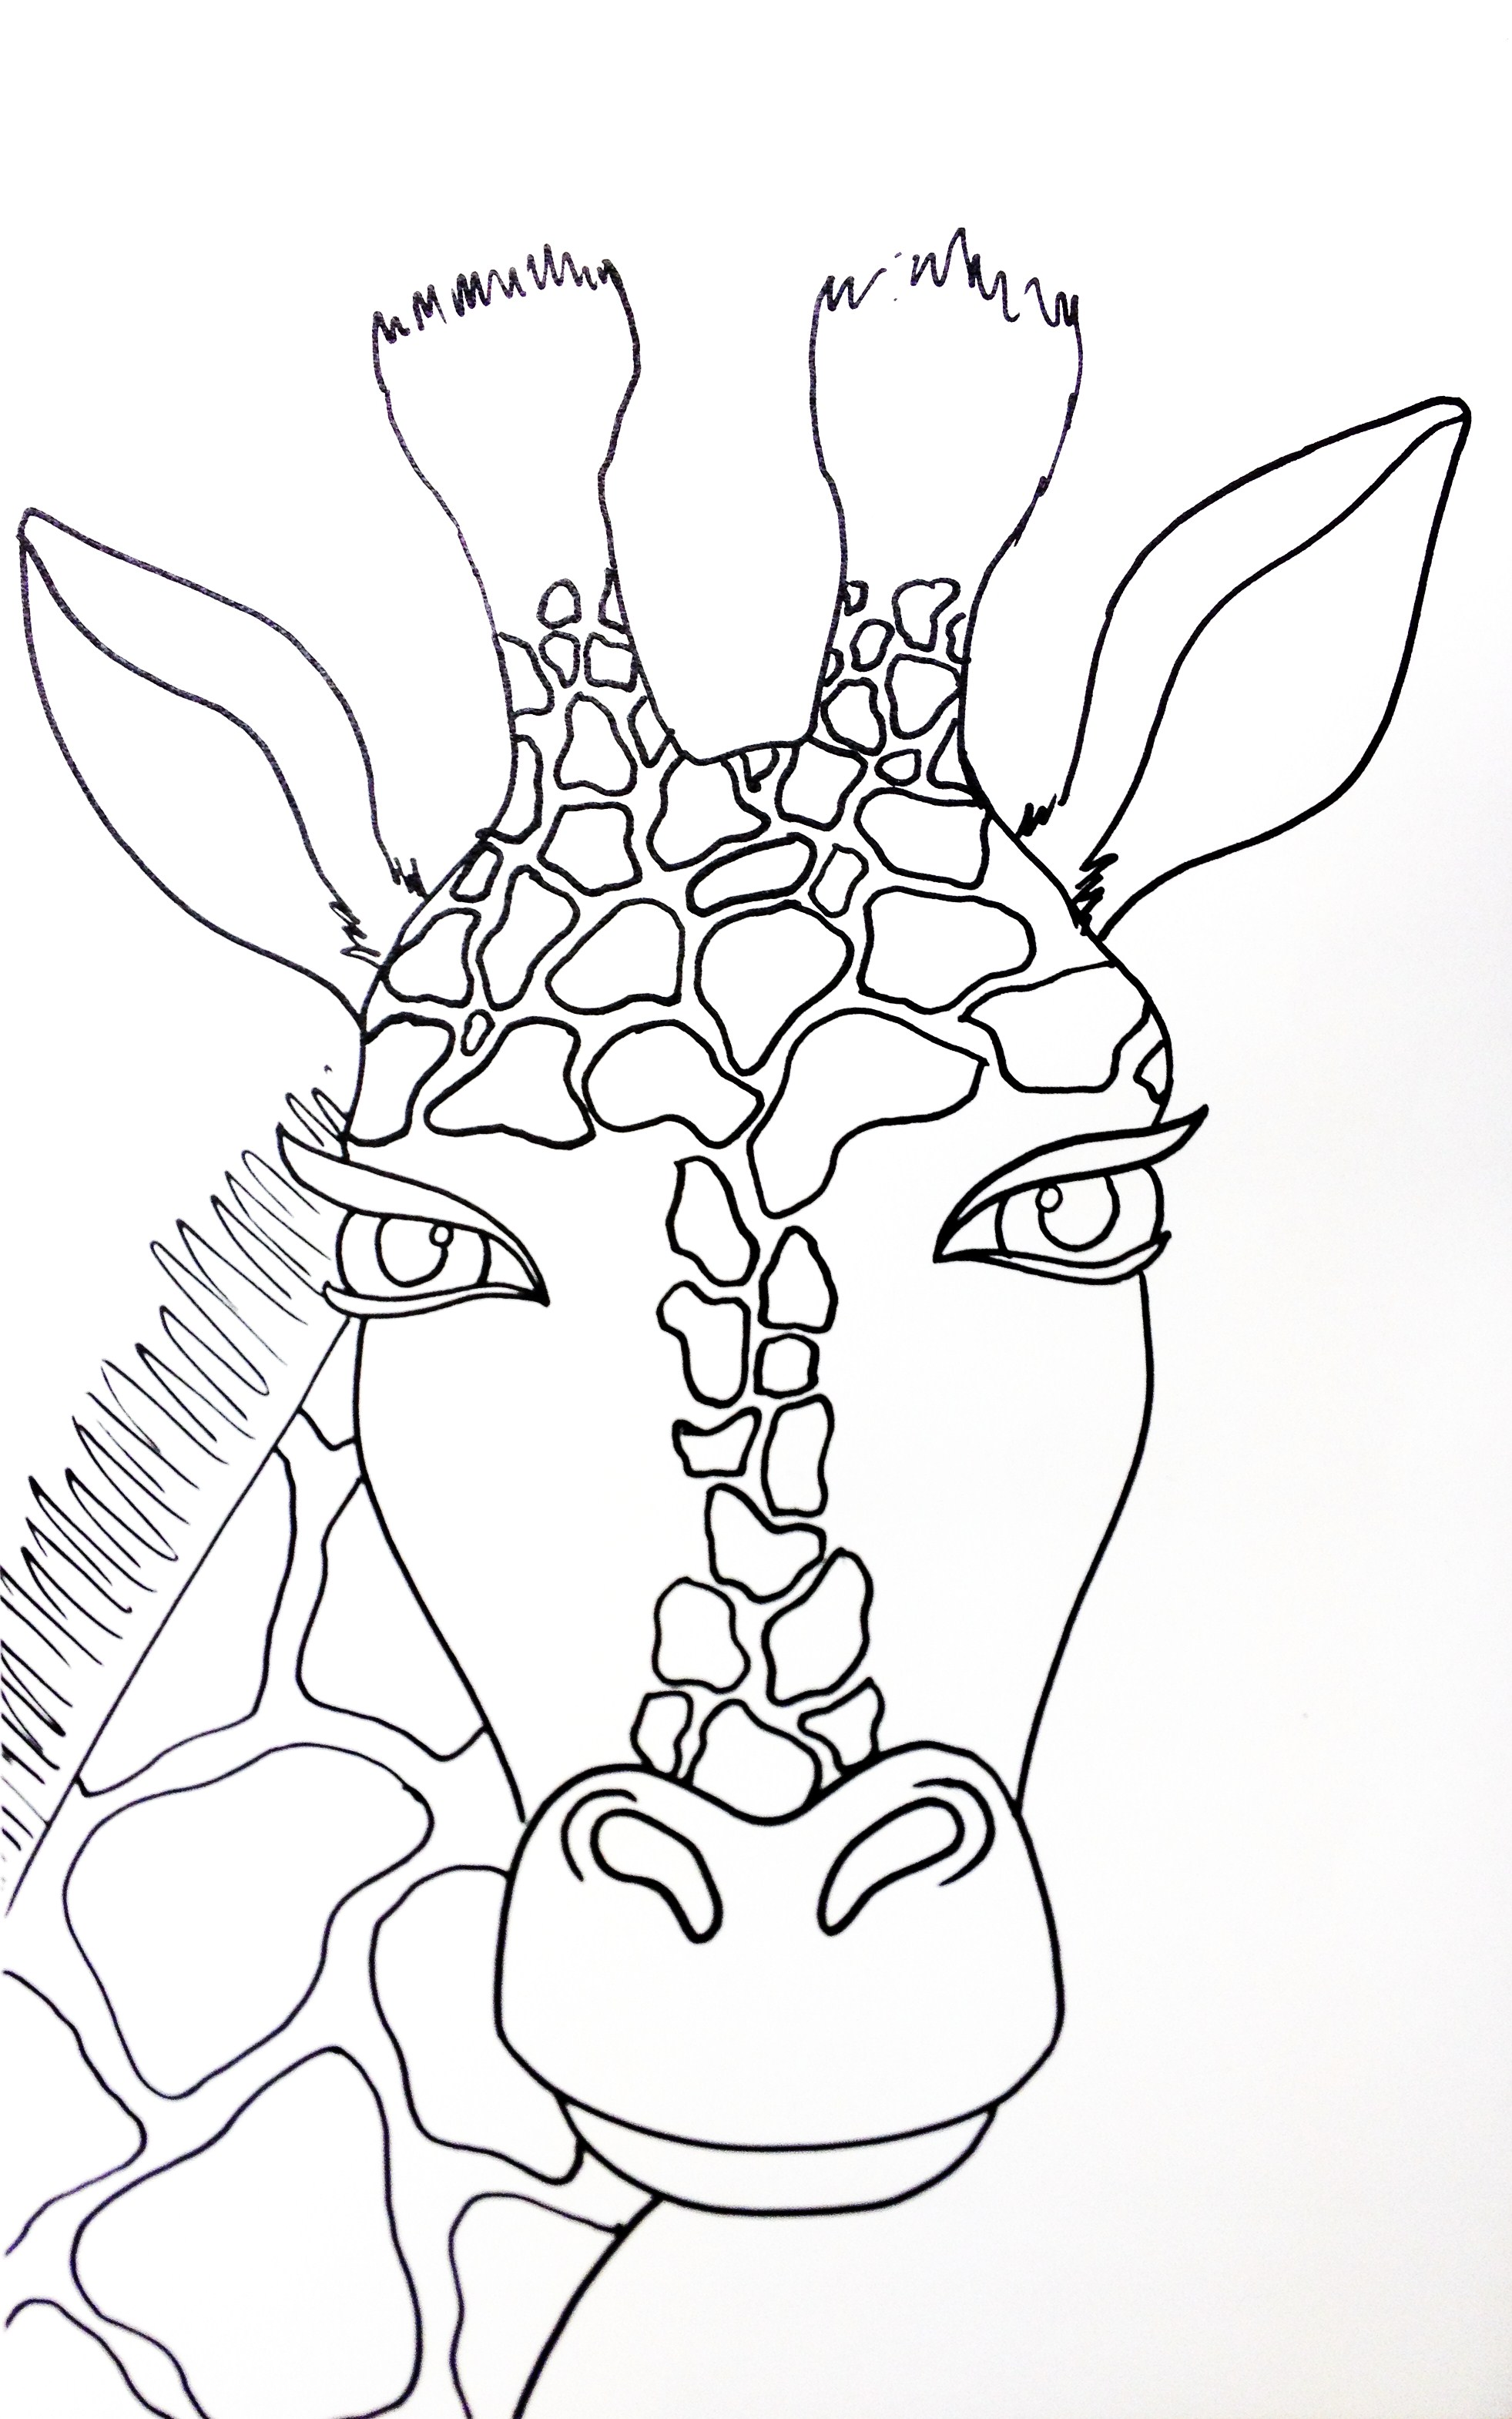 Giraffe Drawing Fauvism and color mood emotionArt Project